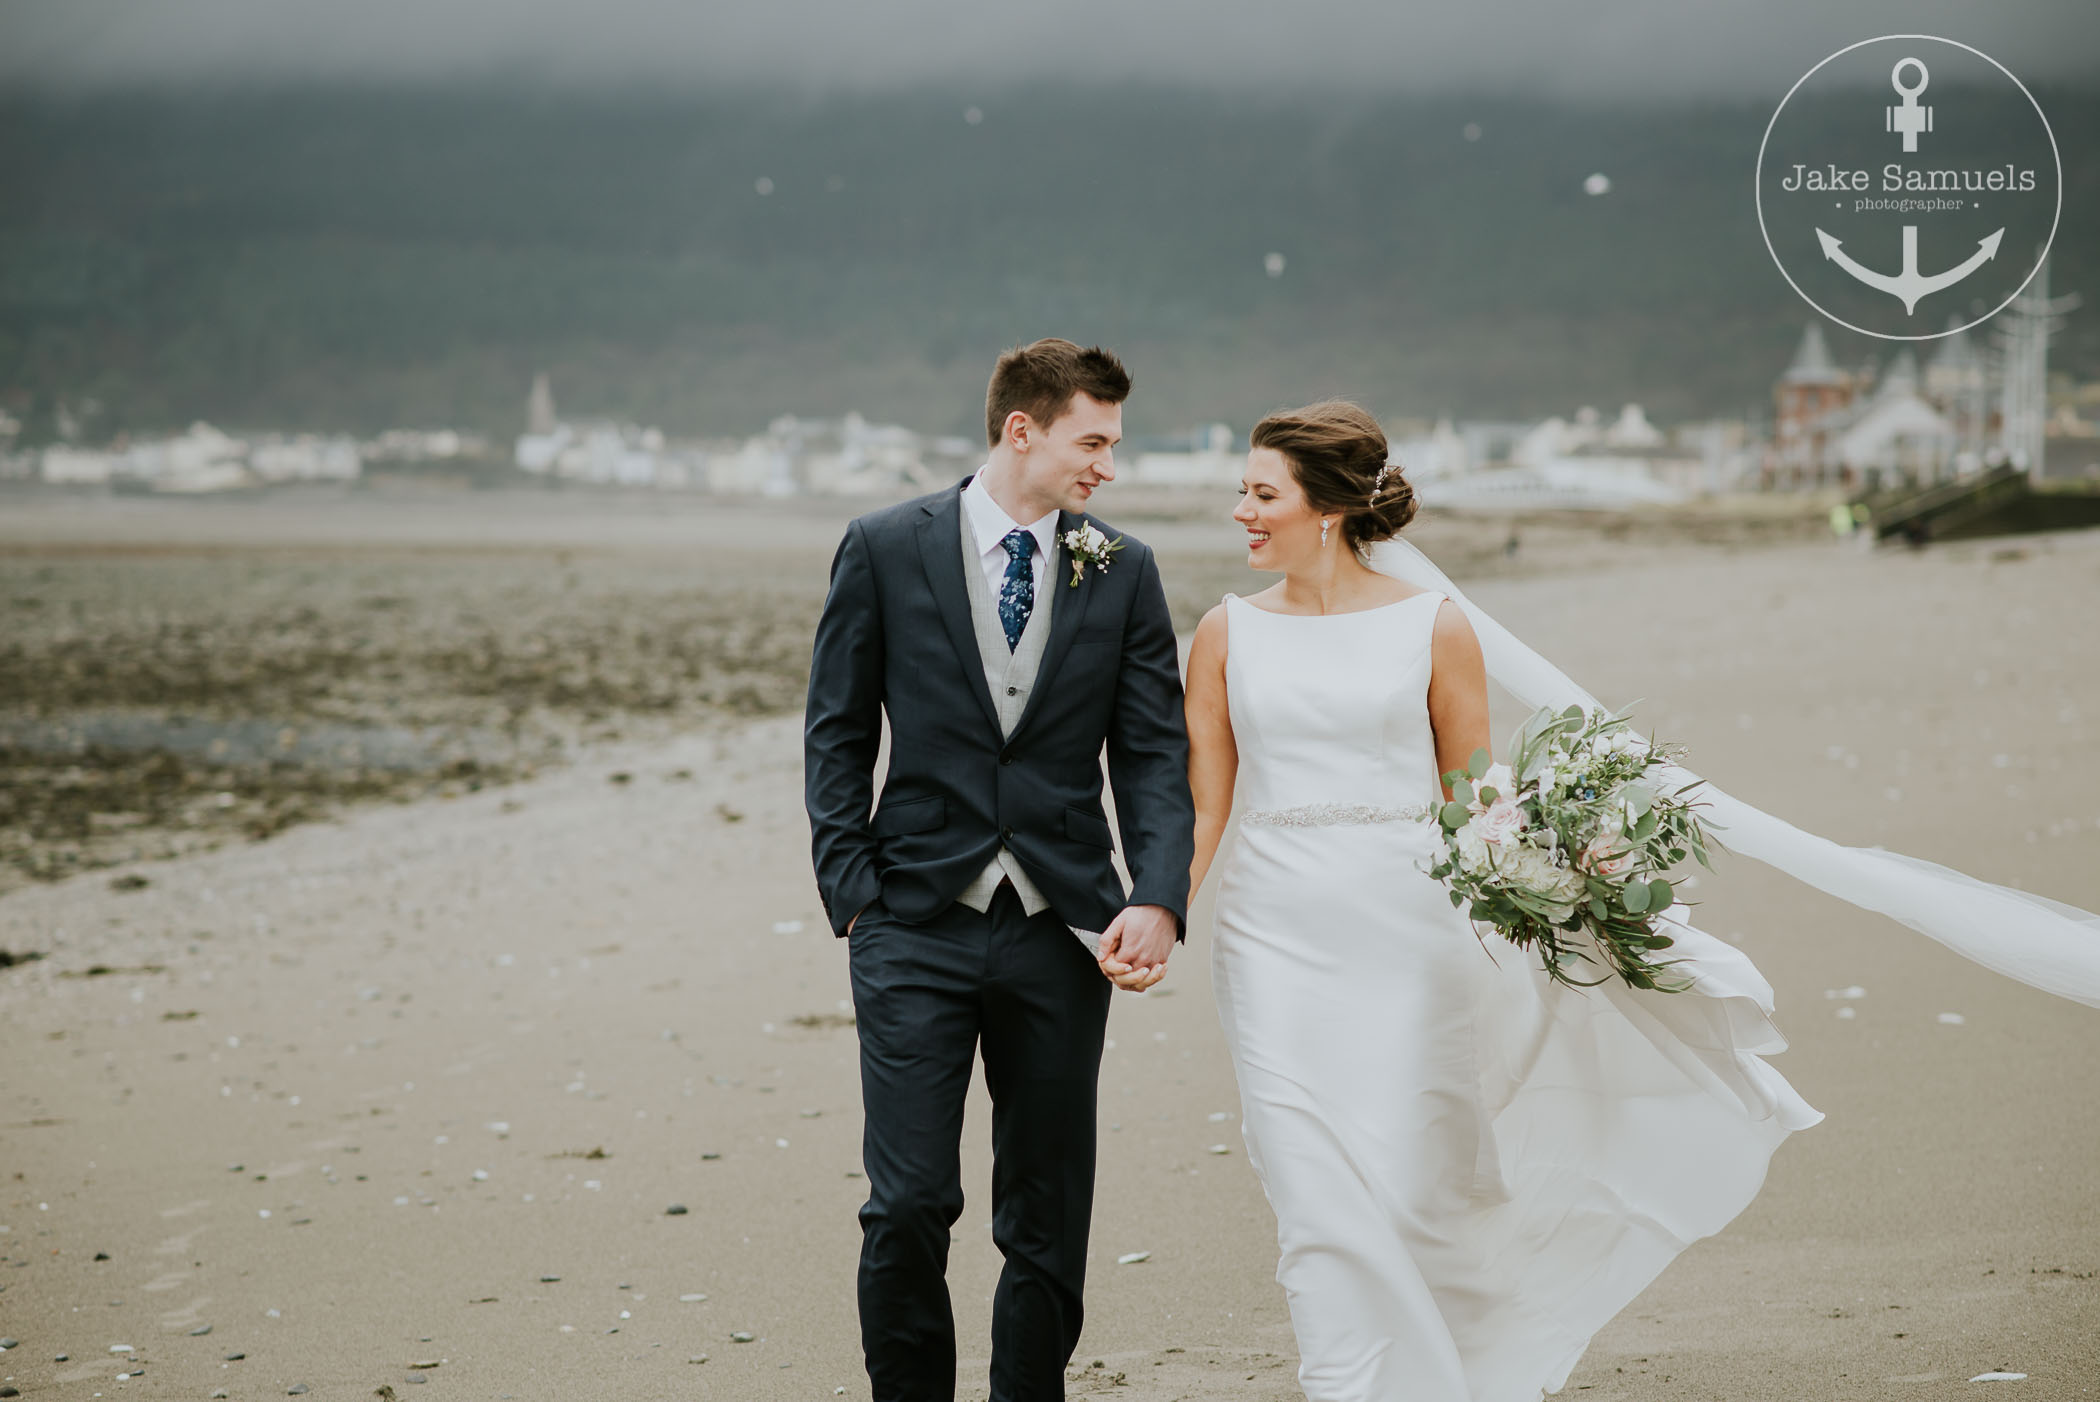 slieve donard wedding photography by Jake Samuels